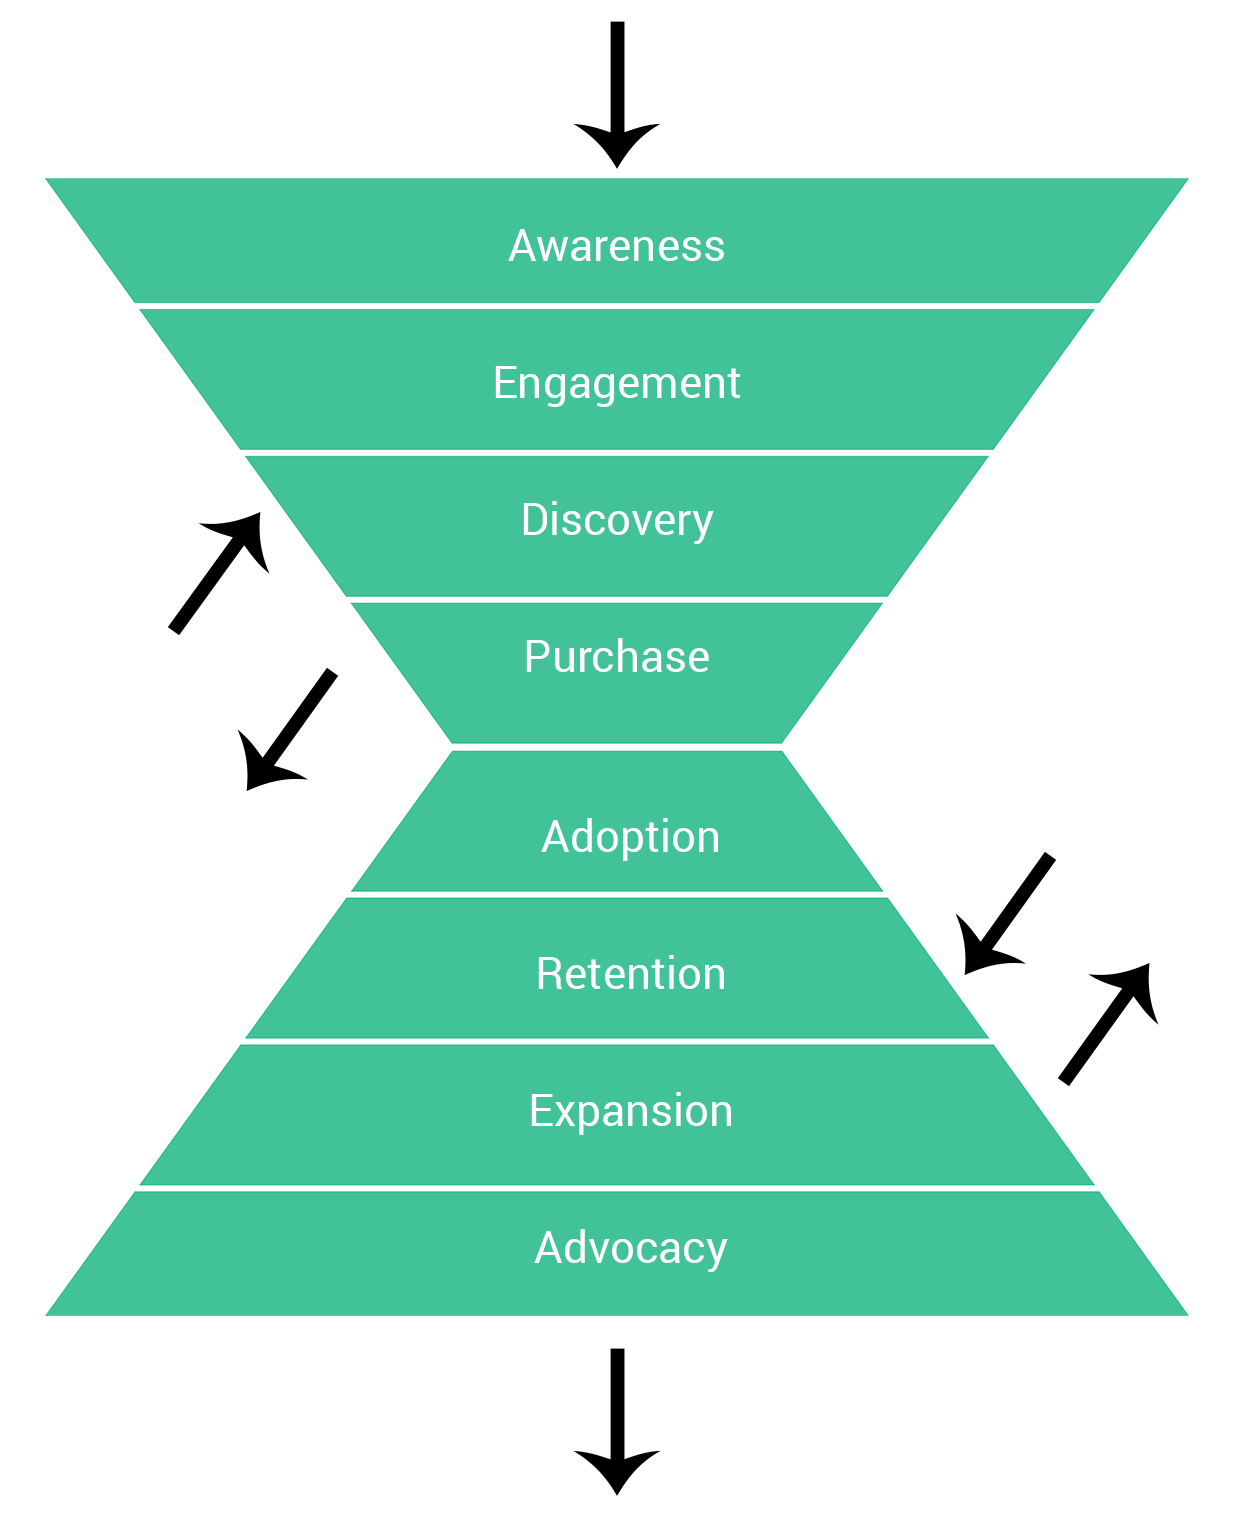 Based on the email marketing trends for 2018, the new marketing funnel will be more dynamic and important for your sales